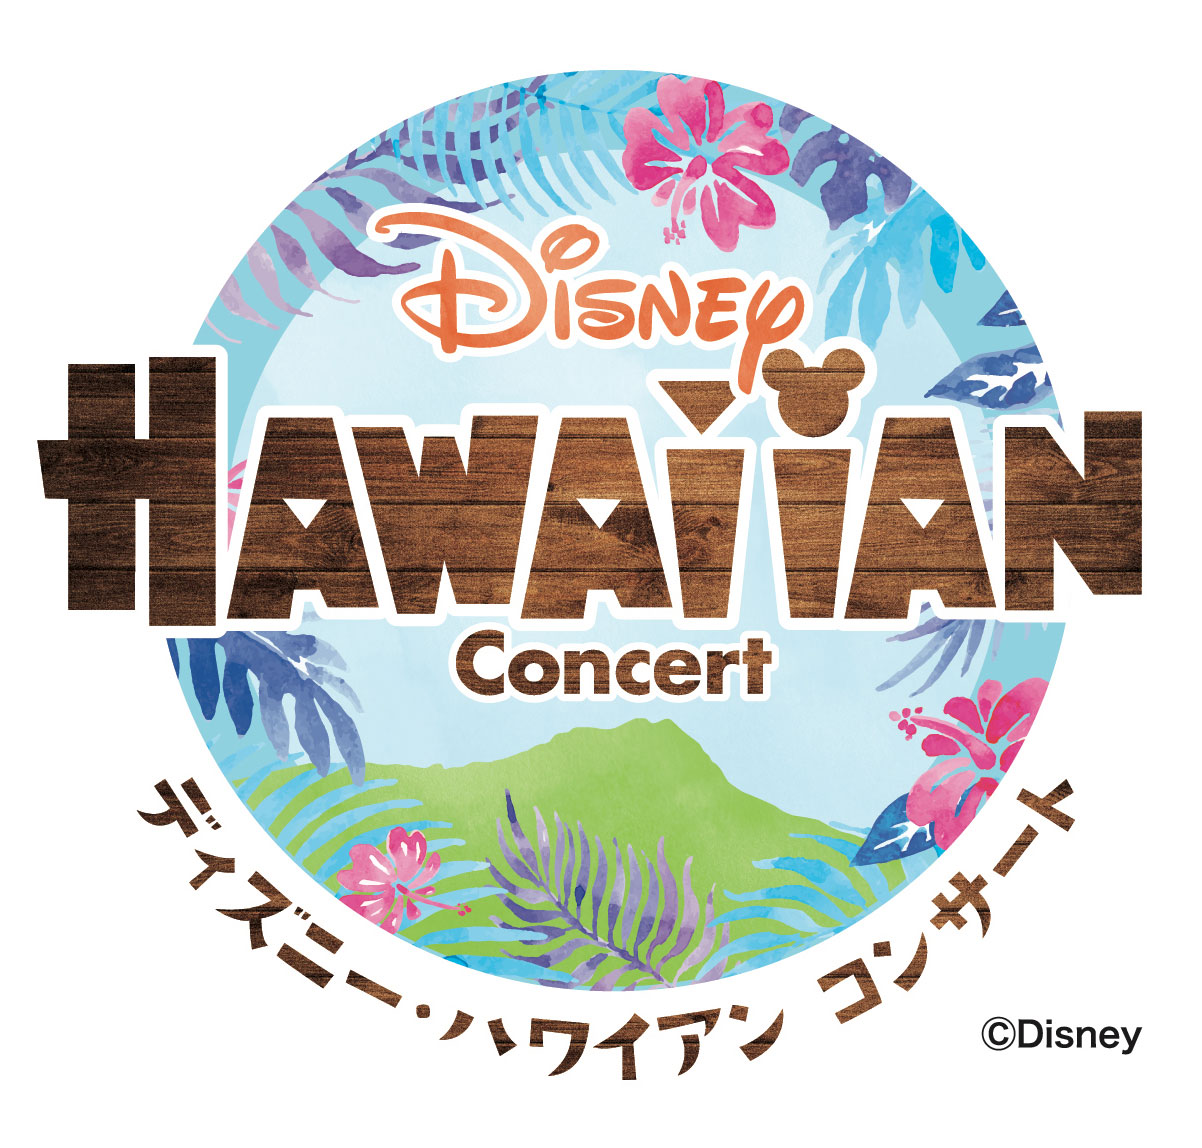 Disney HAWAIIAN Concert 2017